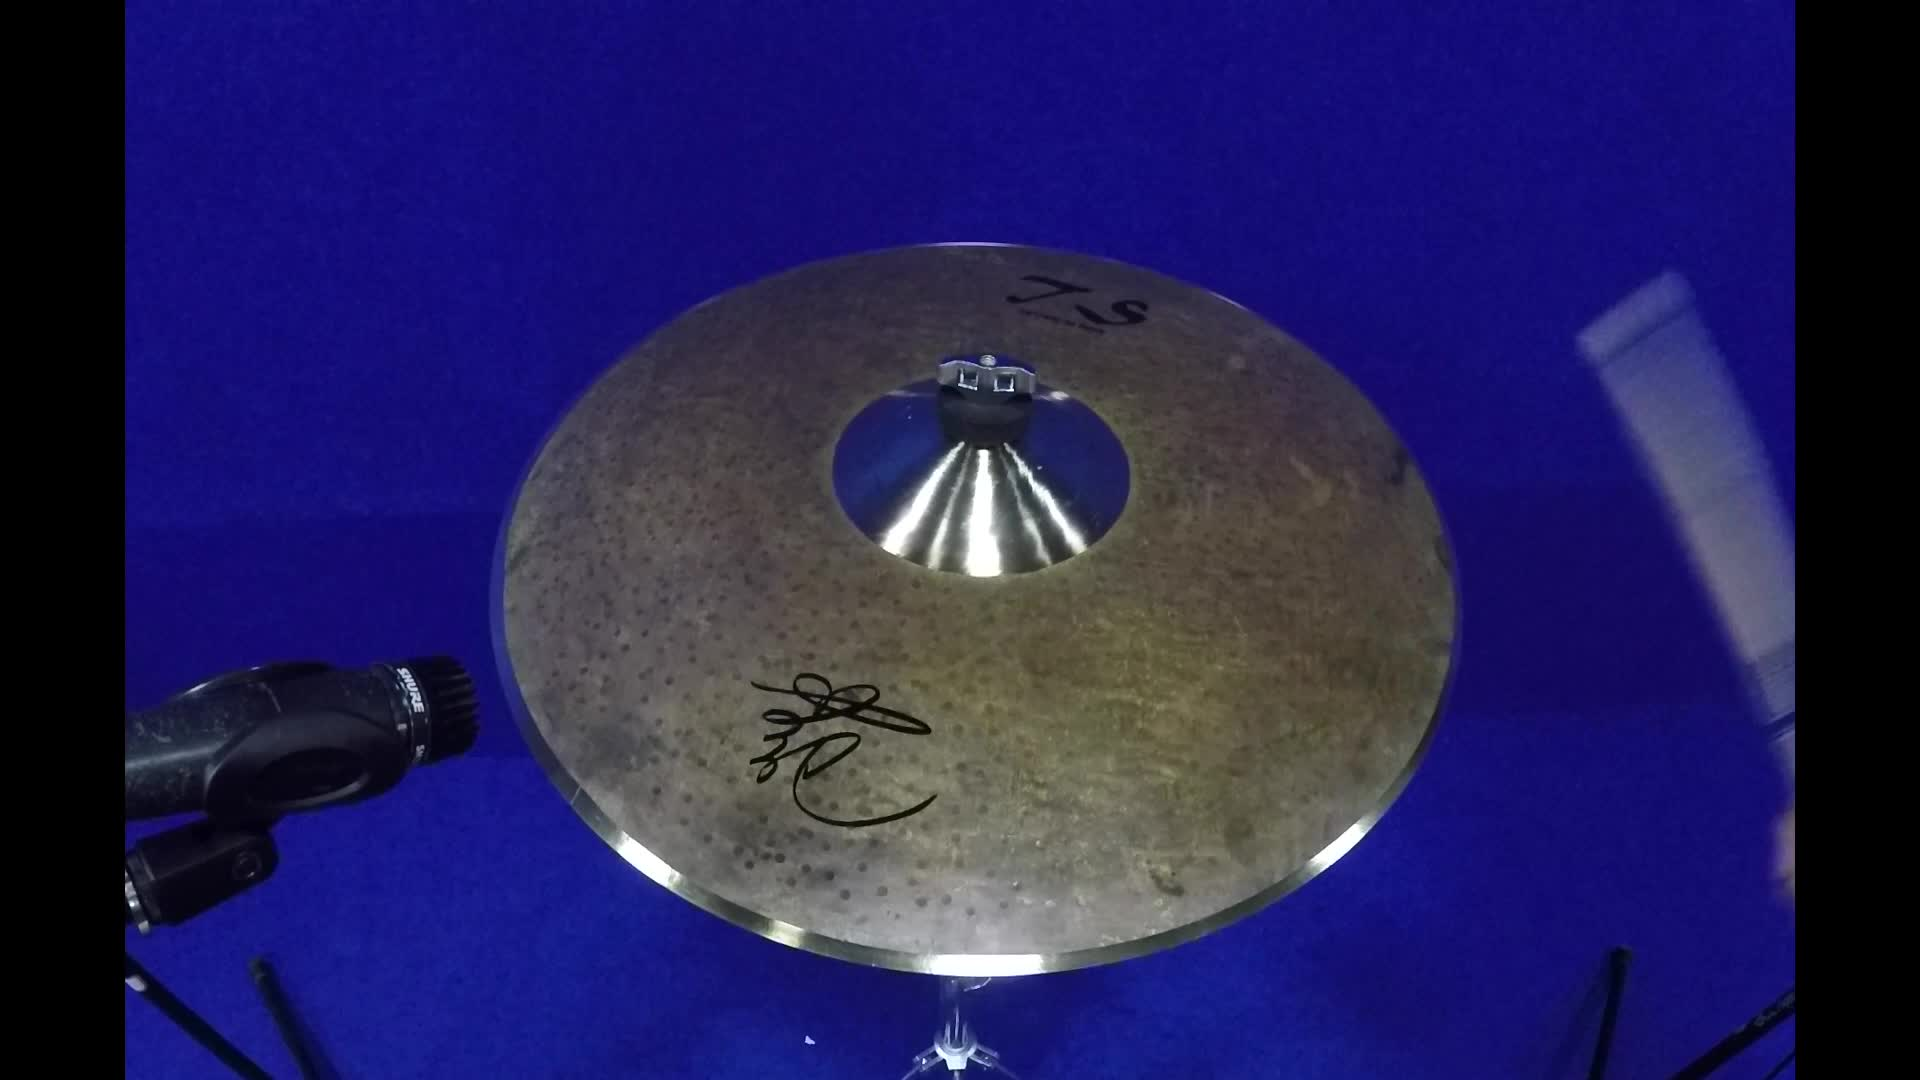 high quality b20 cymbals for drums